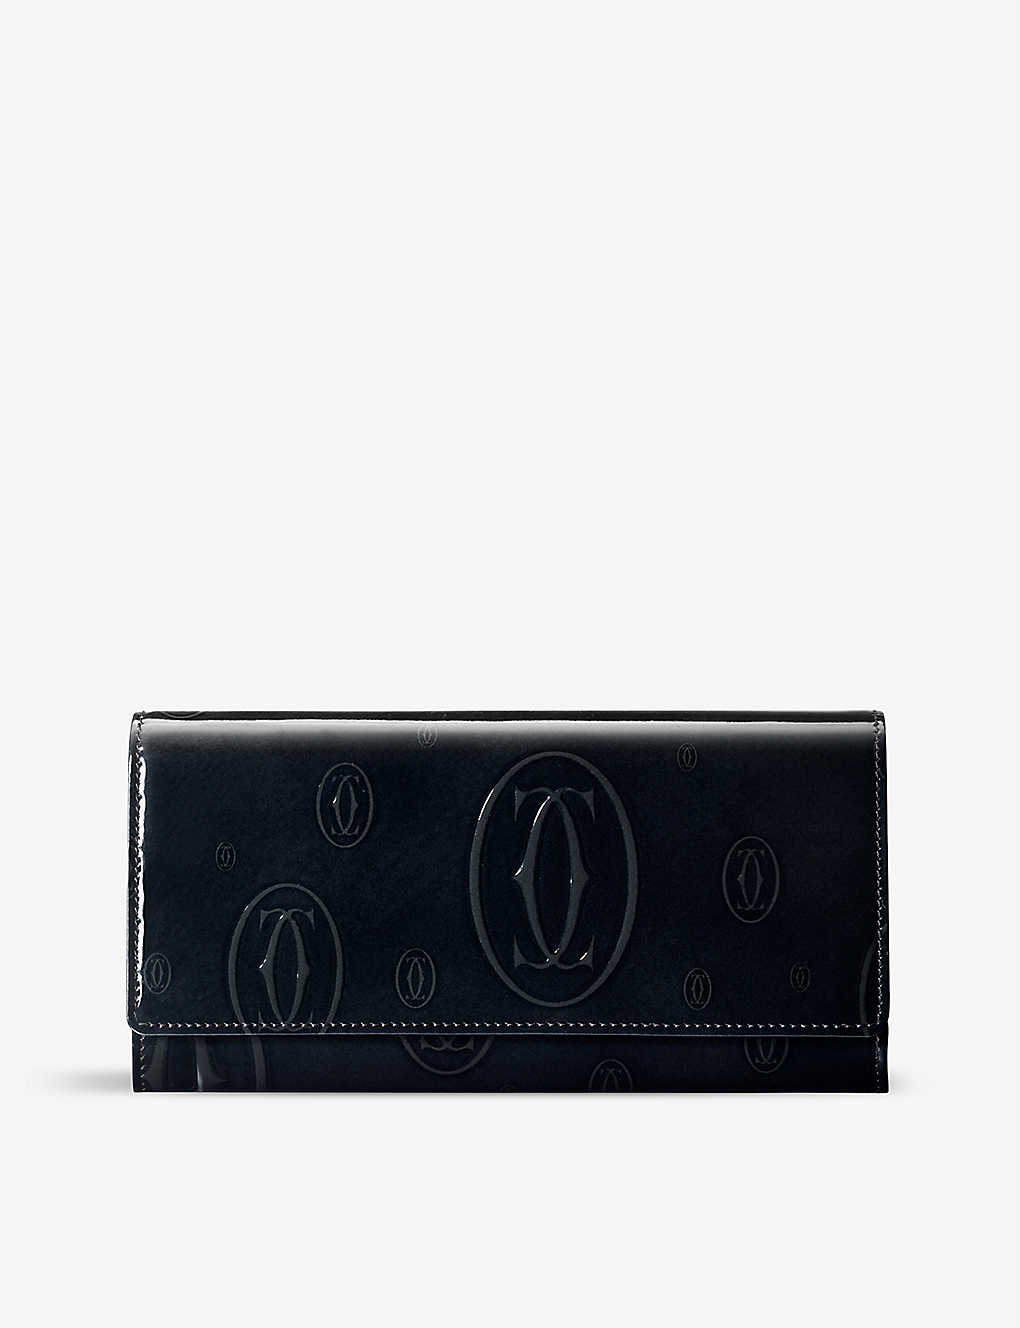 CARTIER: Must de Cartier calfskin patina-finish international wallet